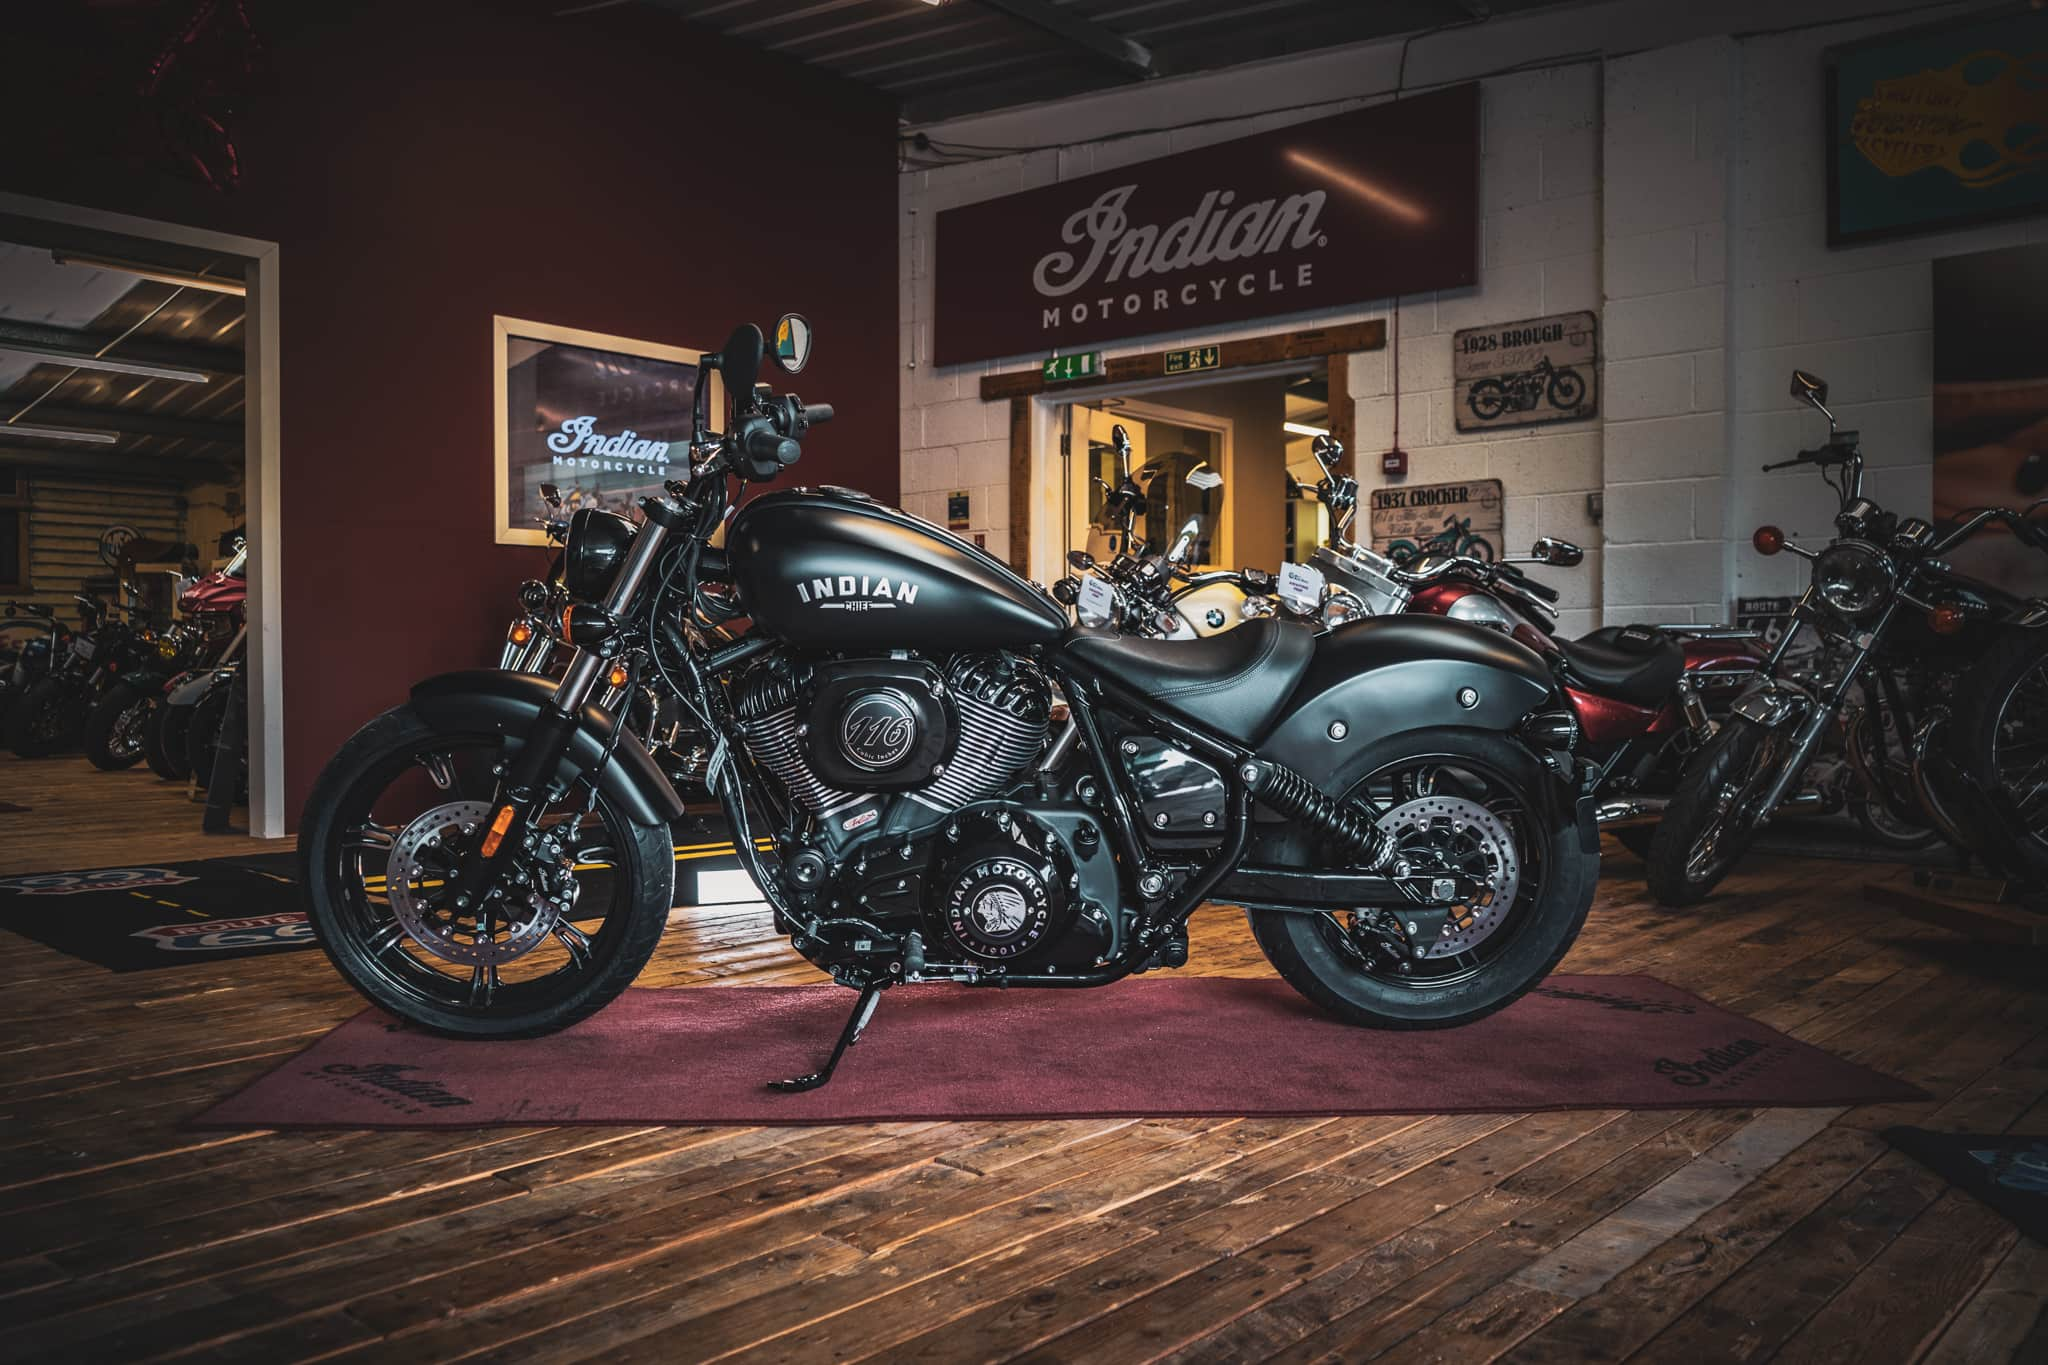 Brand New! Indian Chief Bobber Dark Horse in Black - 19th July